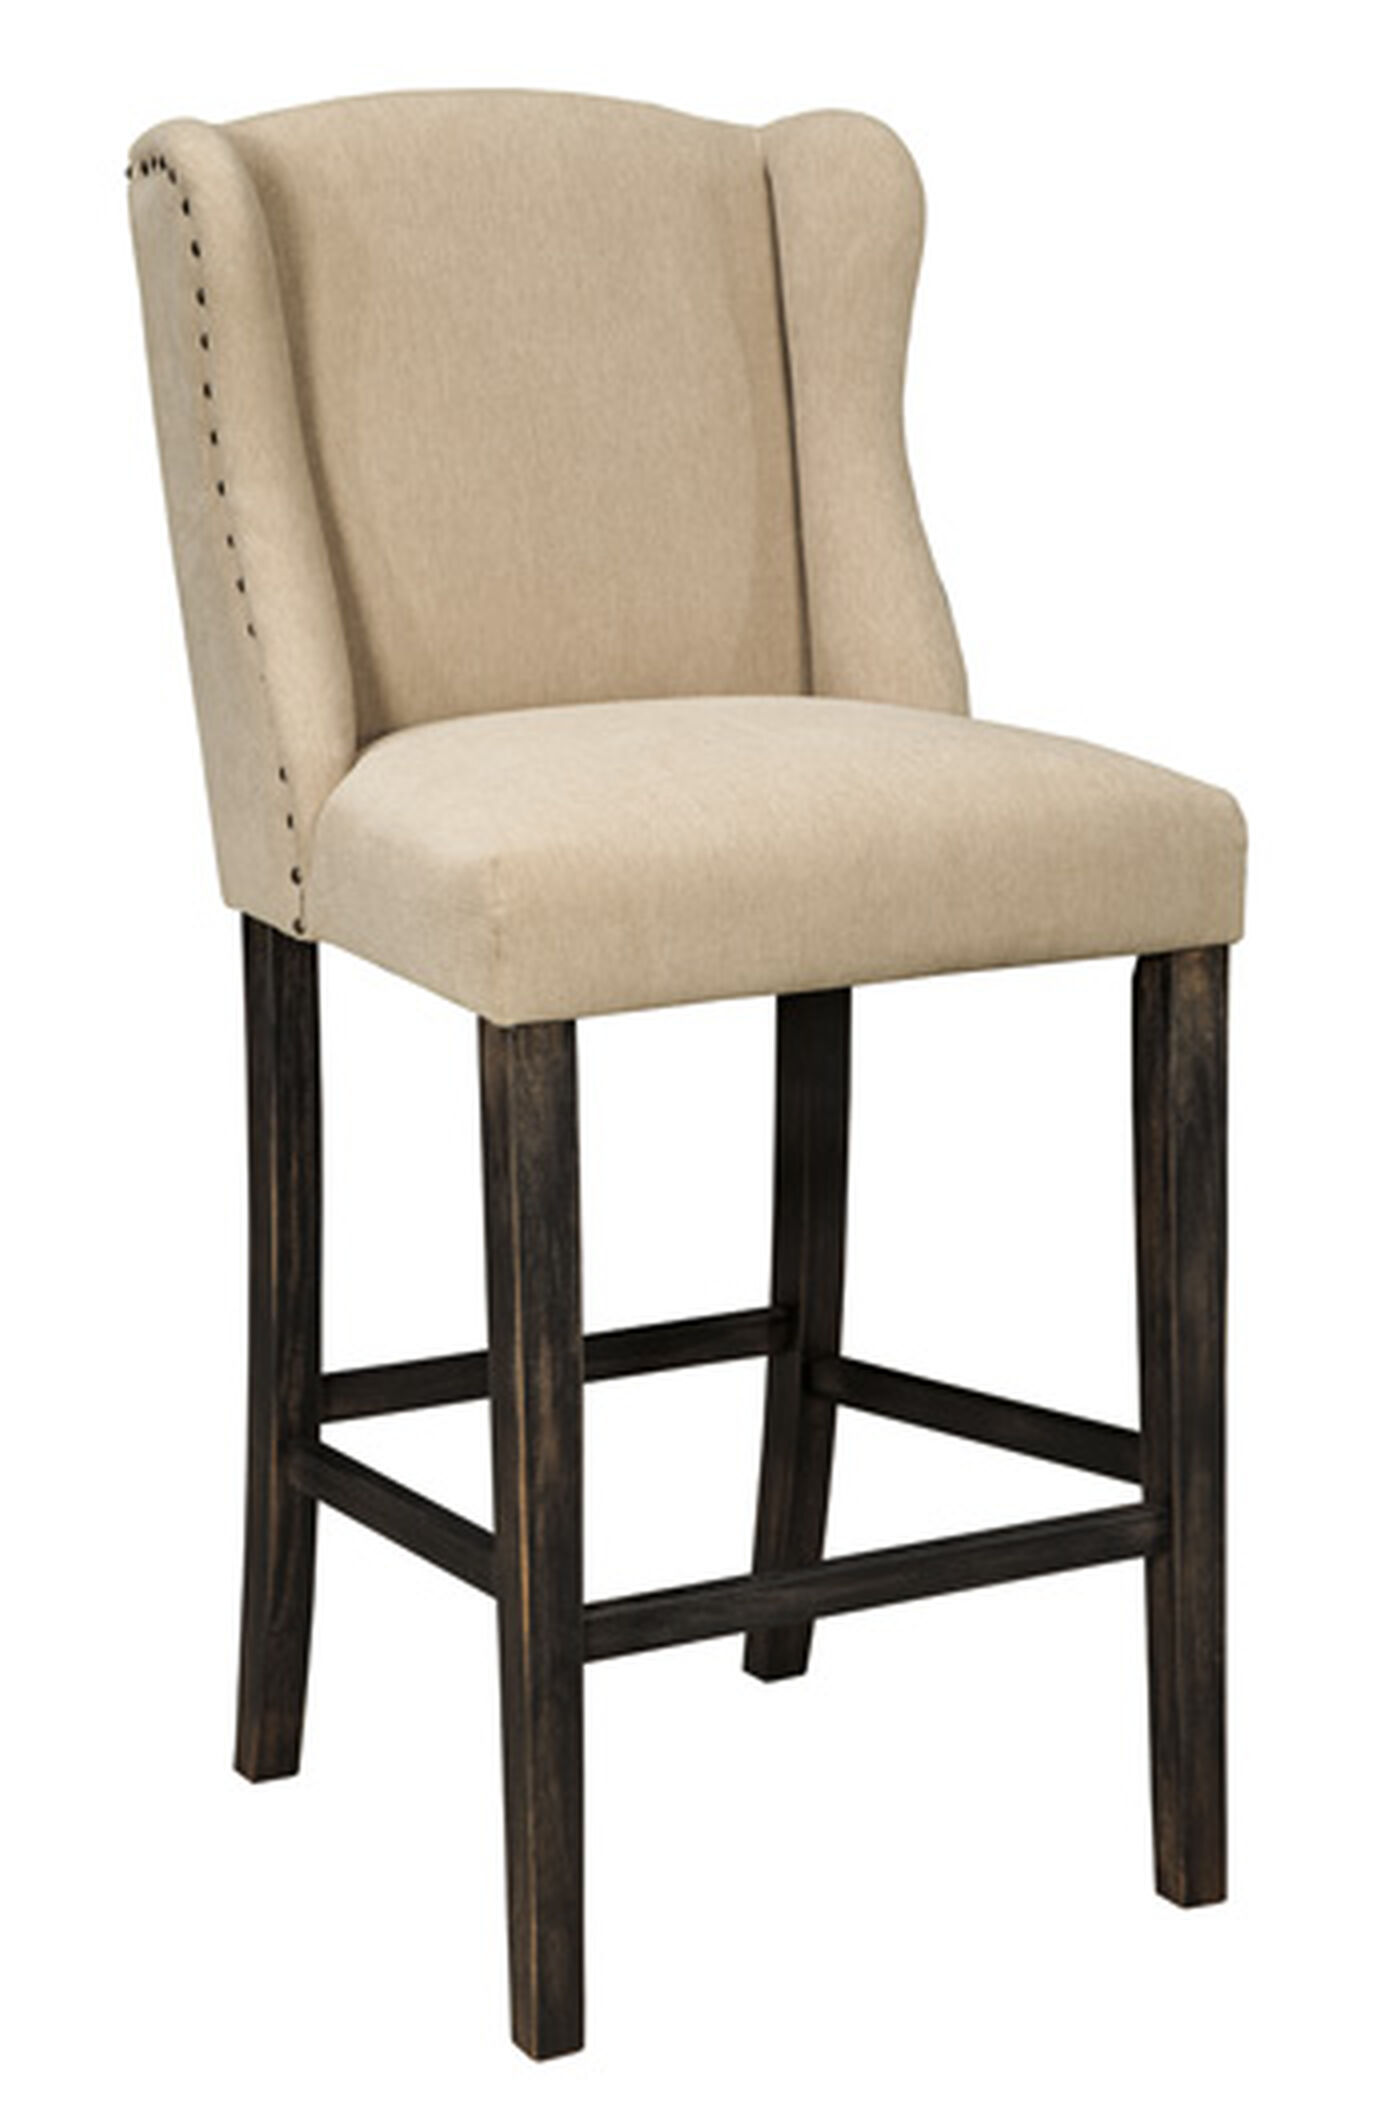 Wingback 46 Quot Nailhead Trimmed Bar Stool In Light Beige